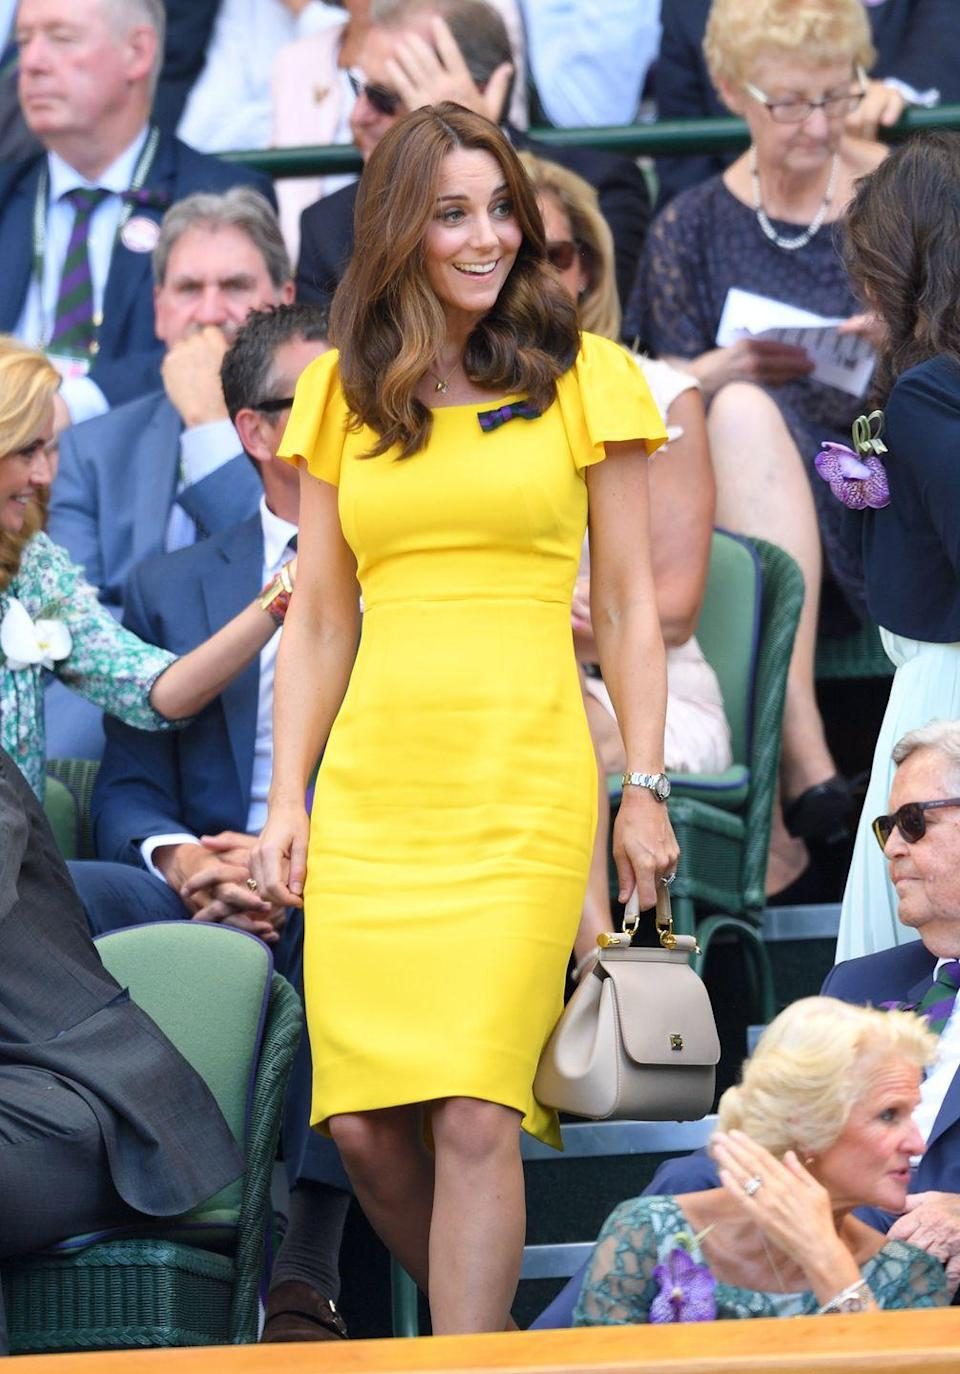 "<p>Kate wore this sunny yellow dress to Wimbledon in 2018. The Duchess of Cambridge <a href=""https://www.cosmopolitan.com/style-beauty/fashion/a22150588/kate-middleton-meghan-markle-yellow/"" rel=""nofollow noopener"" target=""_blank"" data-ylk=""slk:has a long history"" class=""link rapid-noclick-resp"">has a long history</a> of wearing this color, and for good reason—it looks stunning on her.</p>"